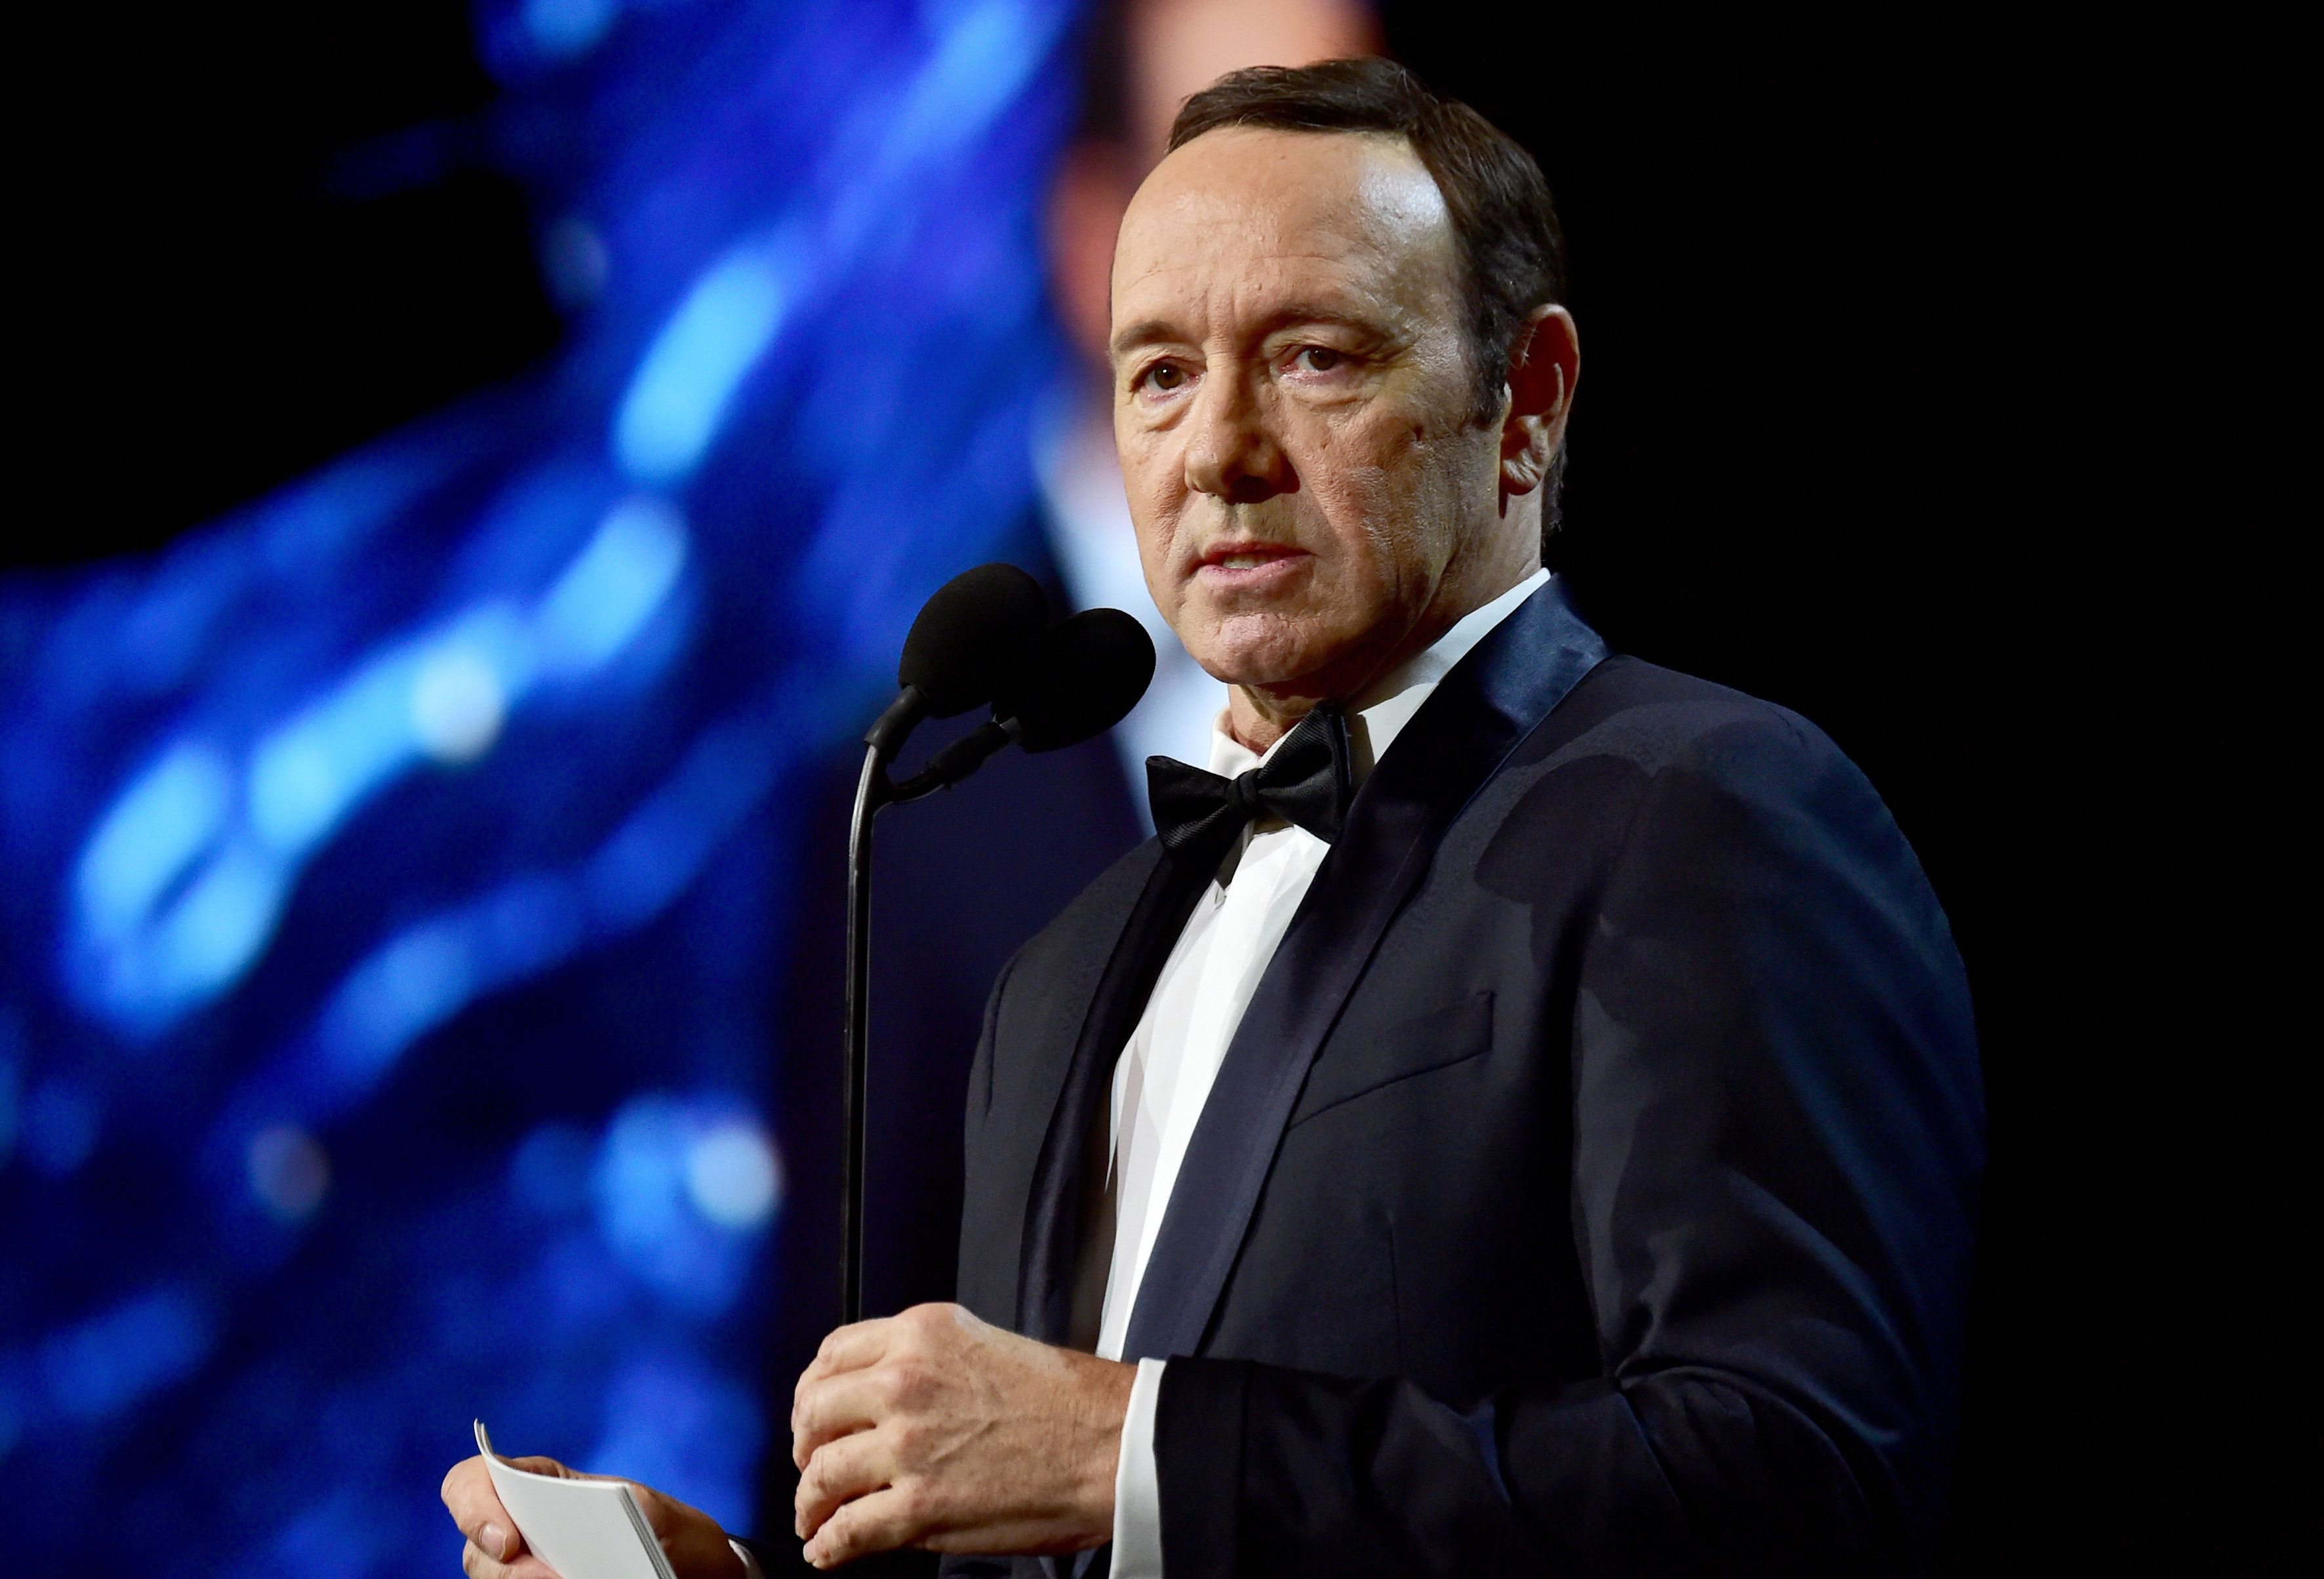 LGBT+ Stars Including Rosie O'Donnell And Zachary Quinto Slam Kevin Spacey Over 'Deflecting'